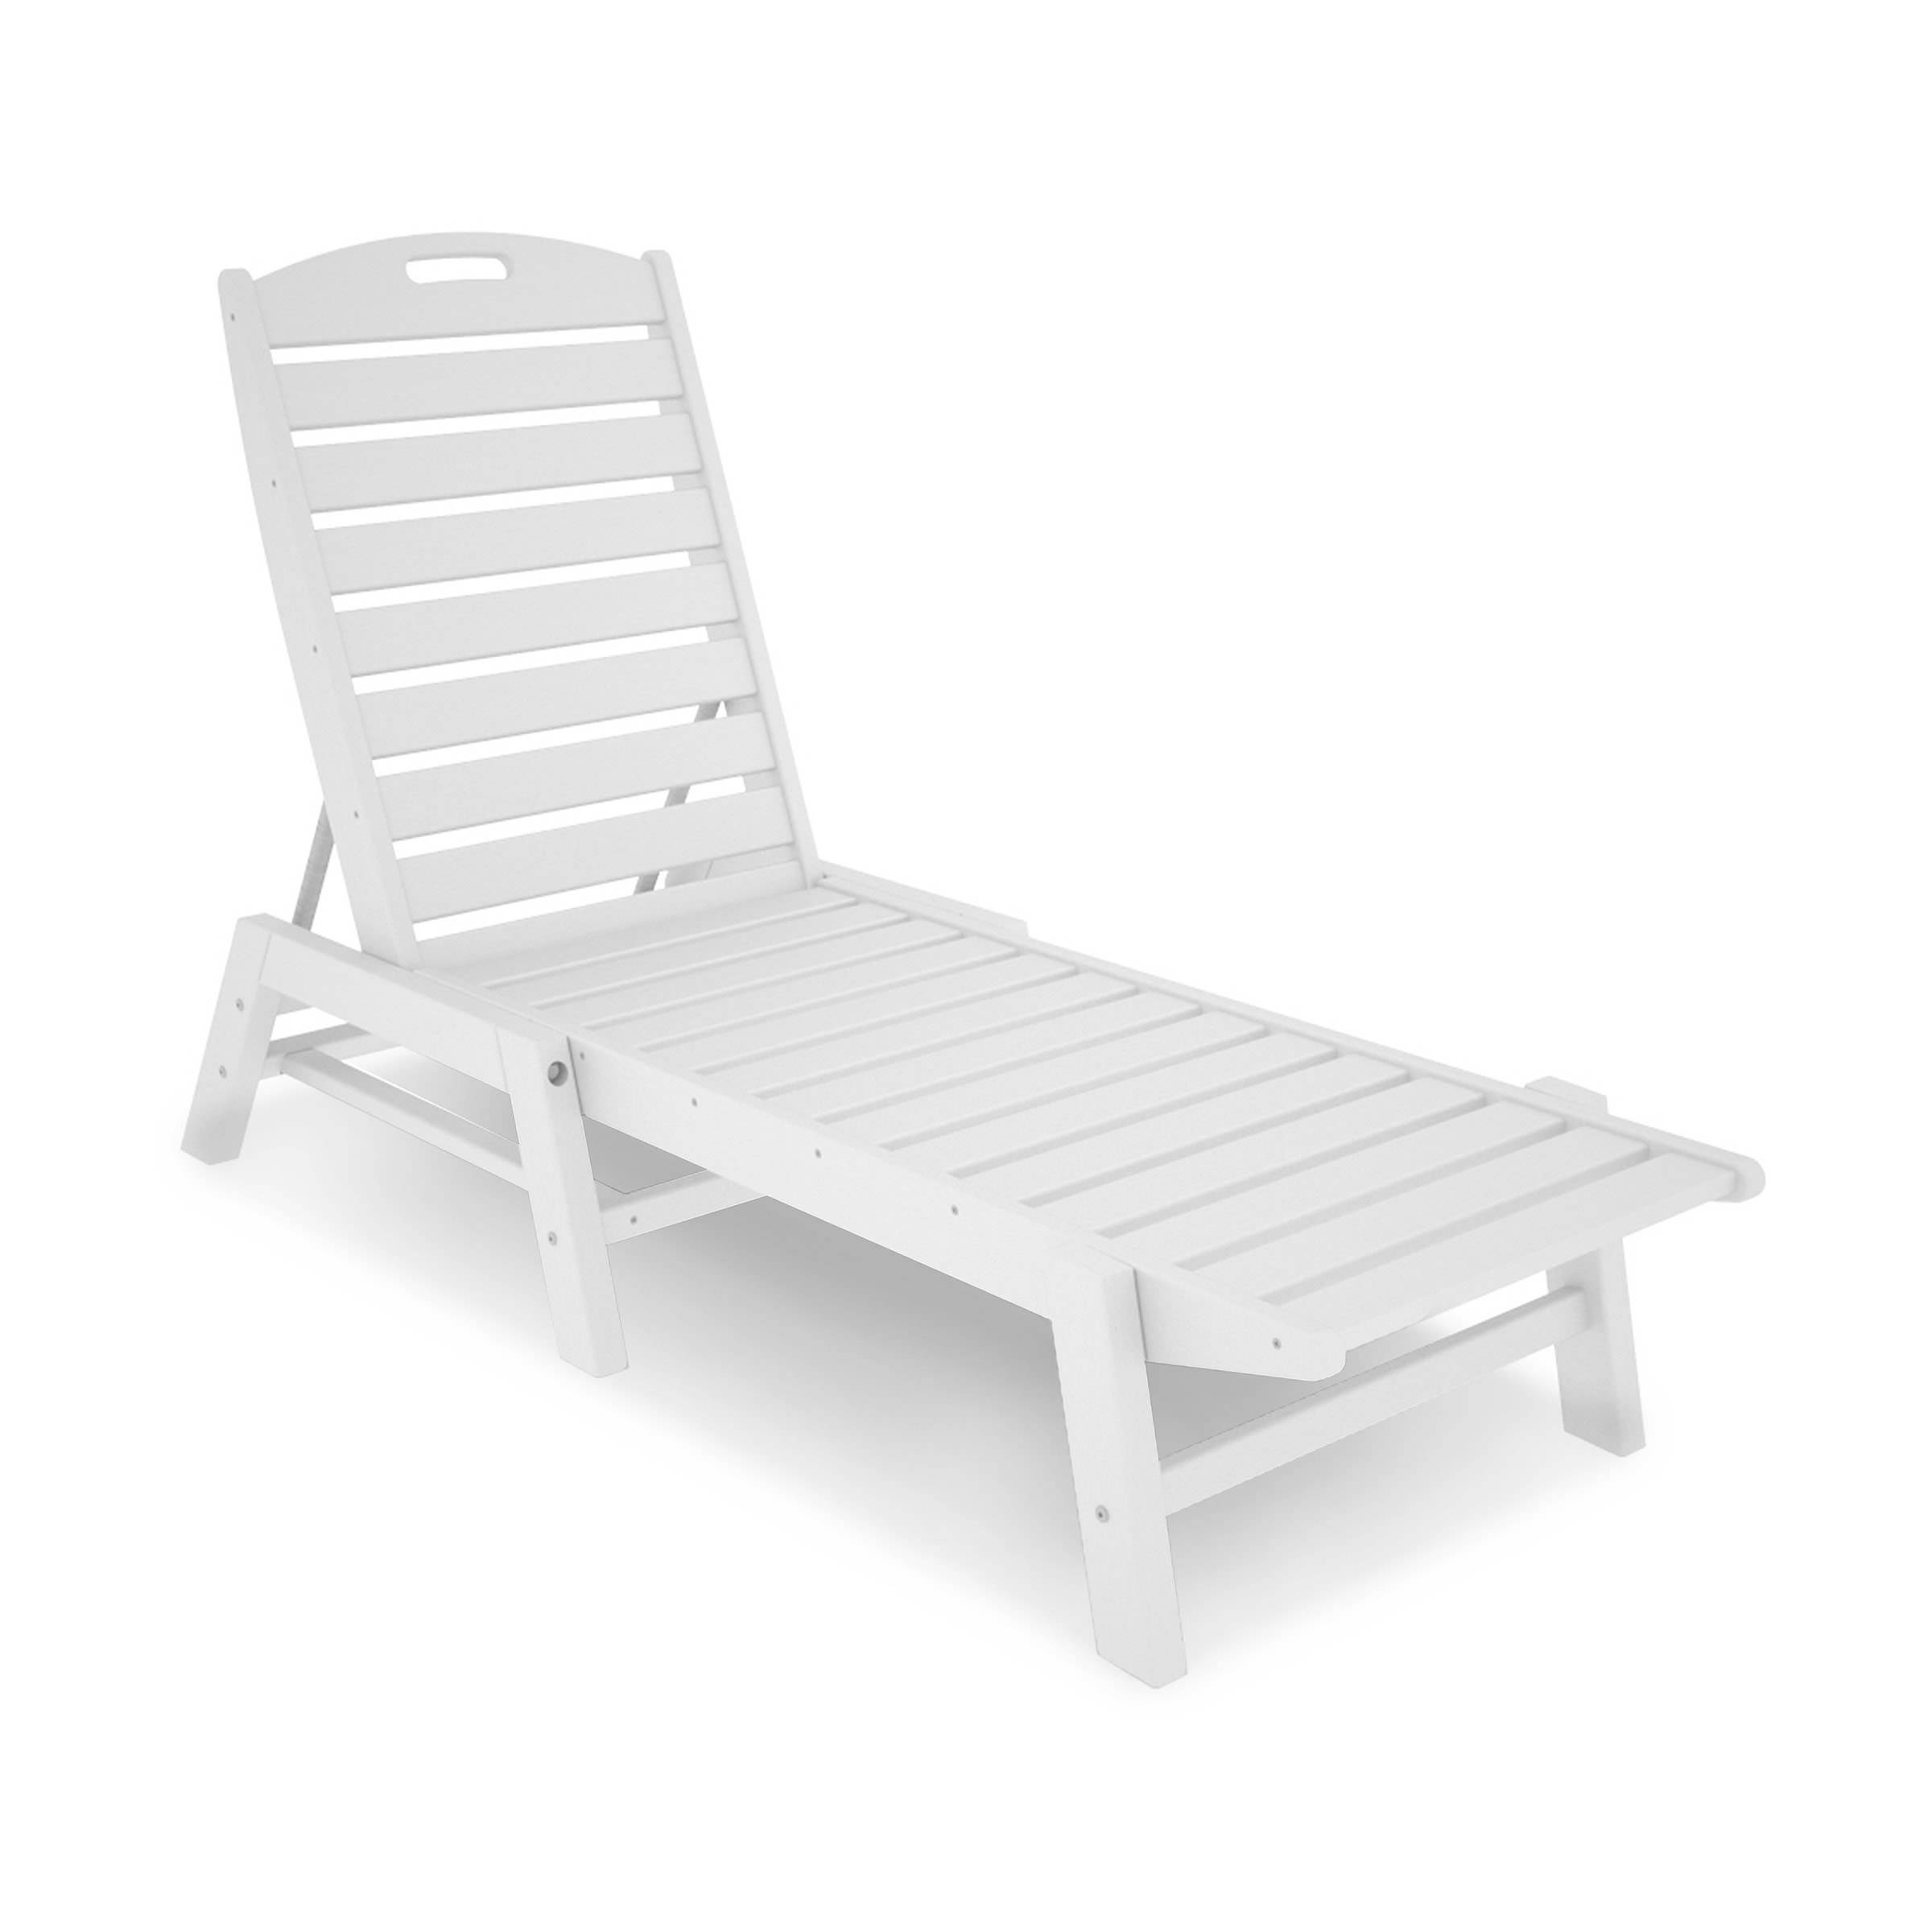 polywood nautical armless chaise lounge  nautical collection  - polywood nautical armless chaise lounge  nautical collection  polywood®outdoor furniture  collections